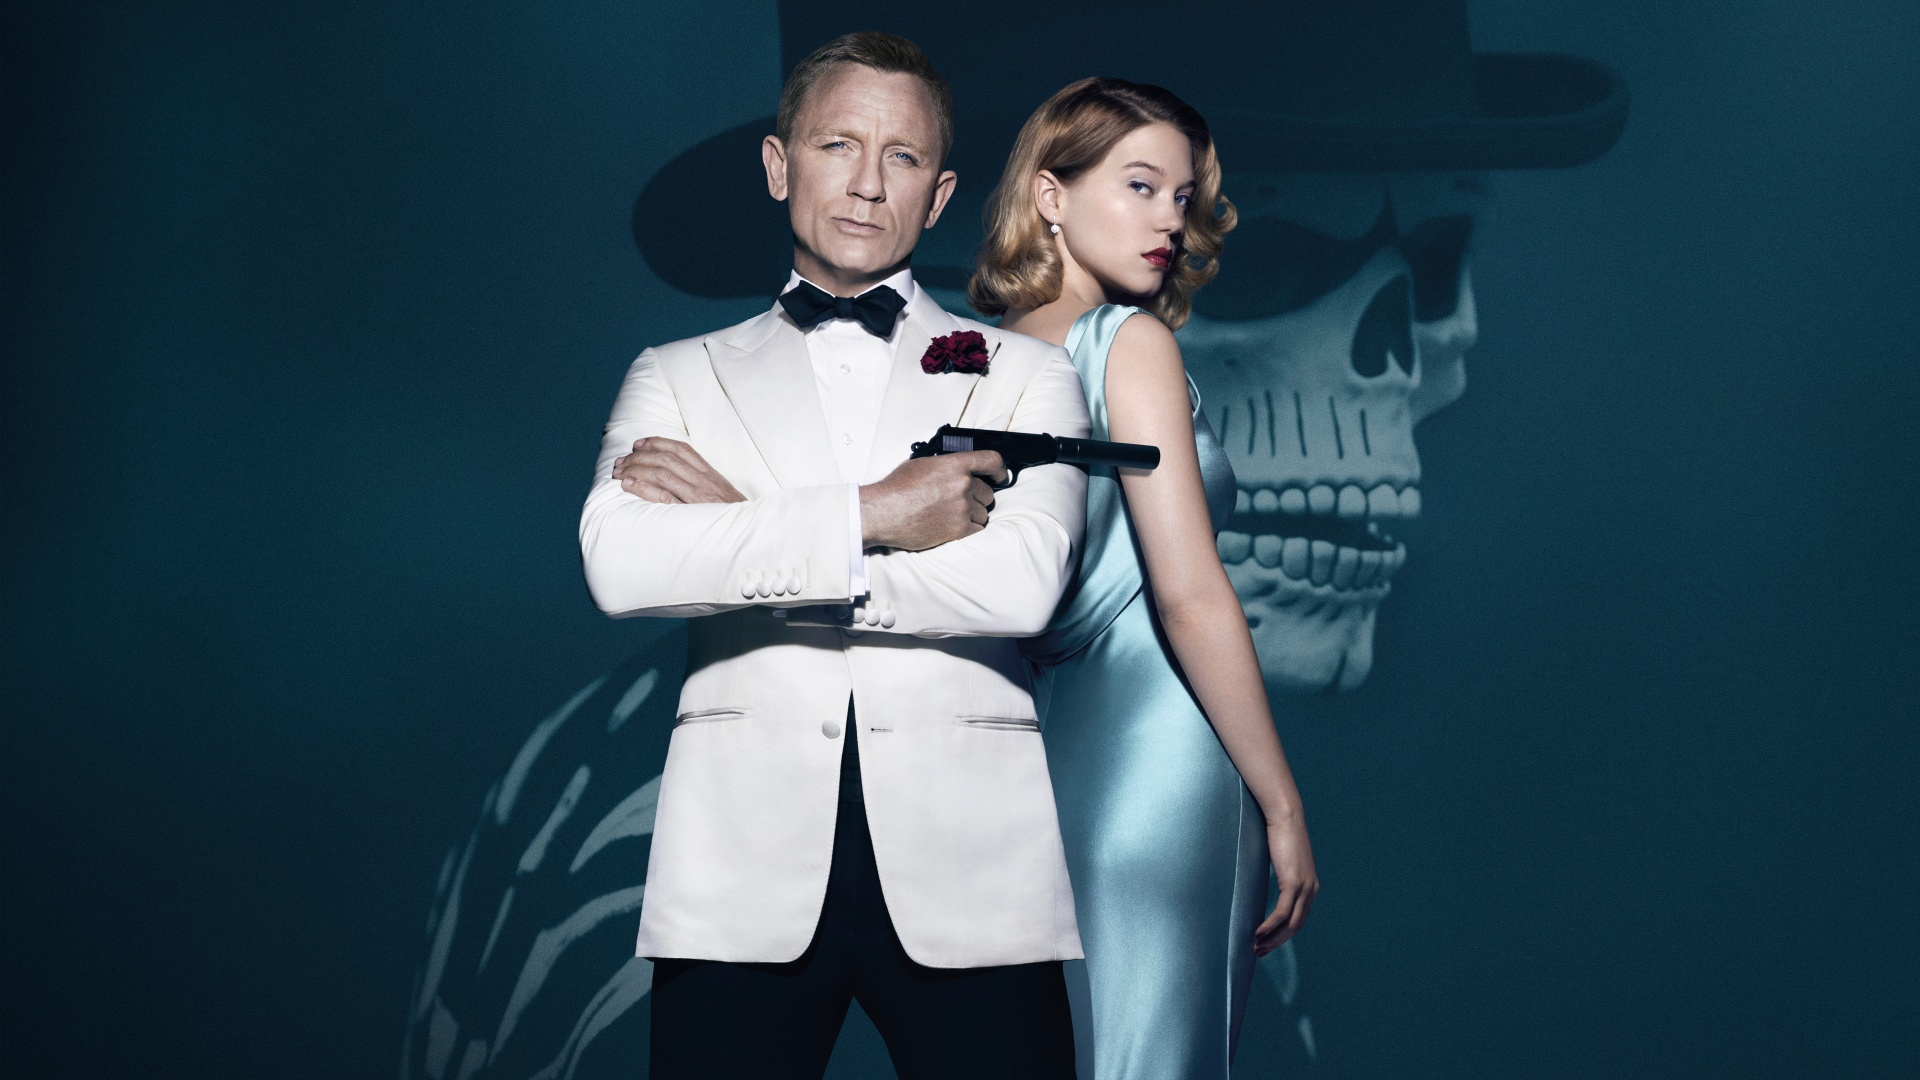 Daniel-Craig-Lea-Seydoux-Spectre-2015-James-Bond-007-Wallpaper-1920x1080